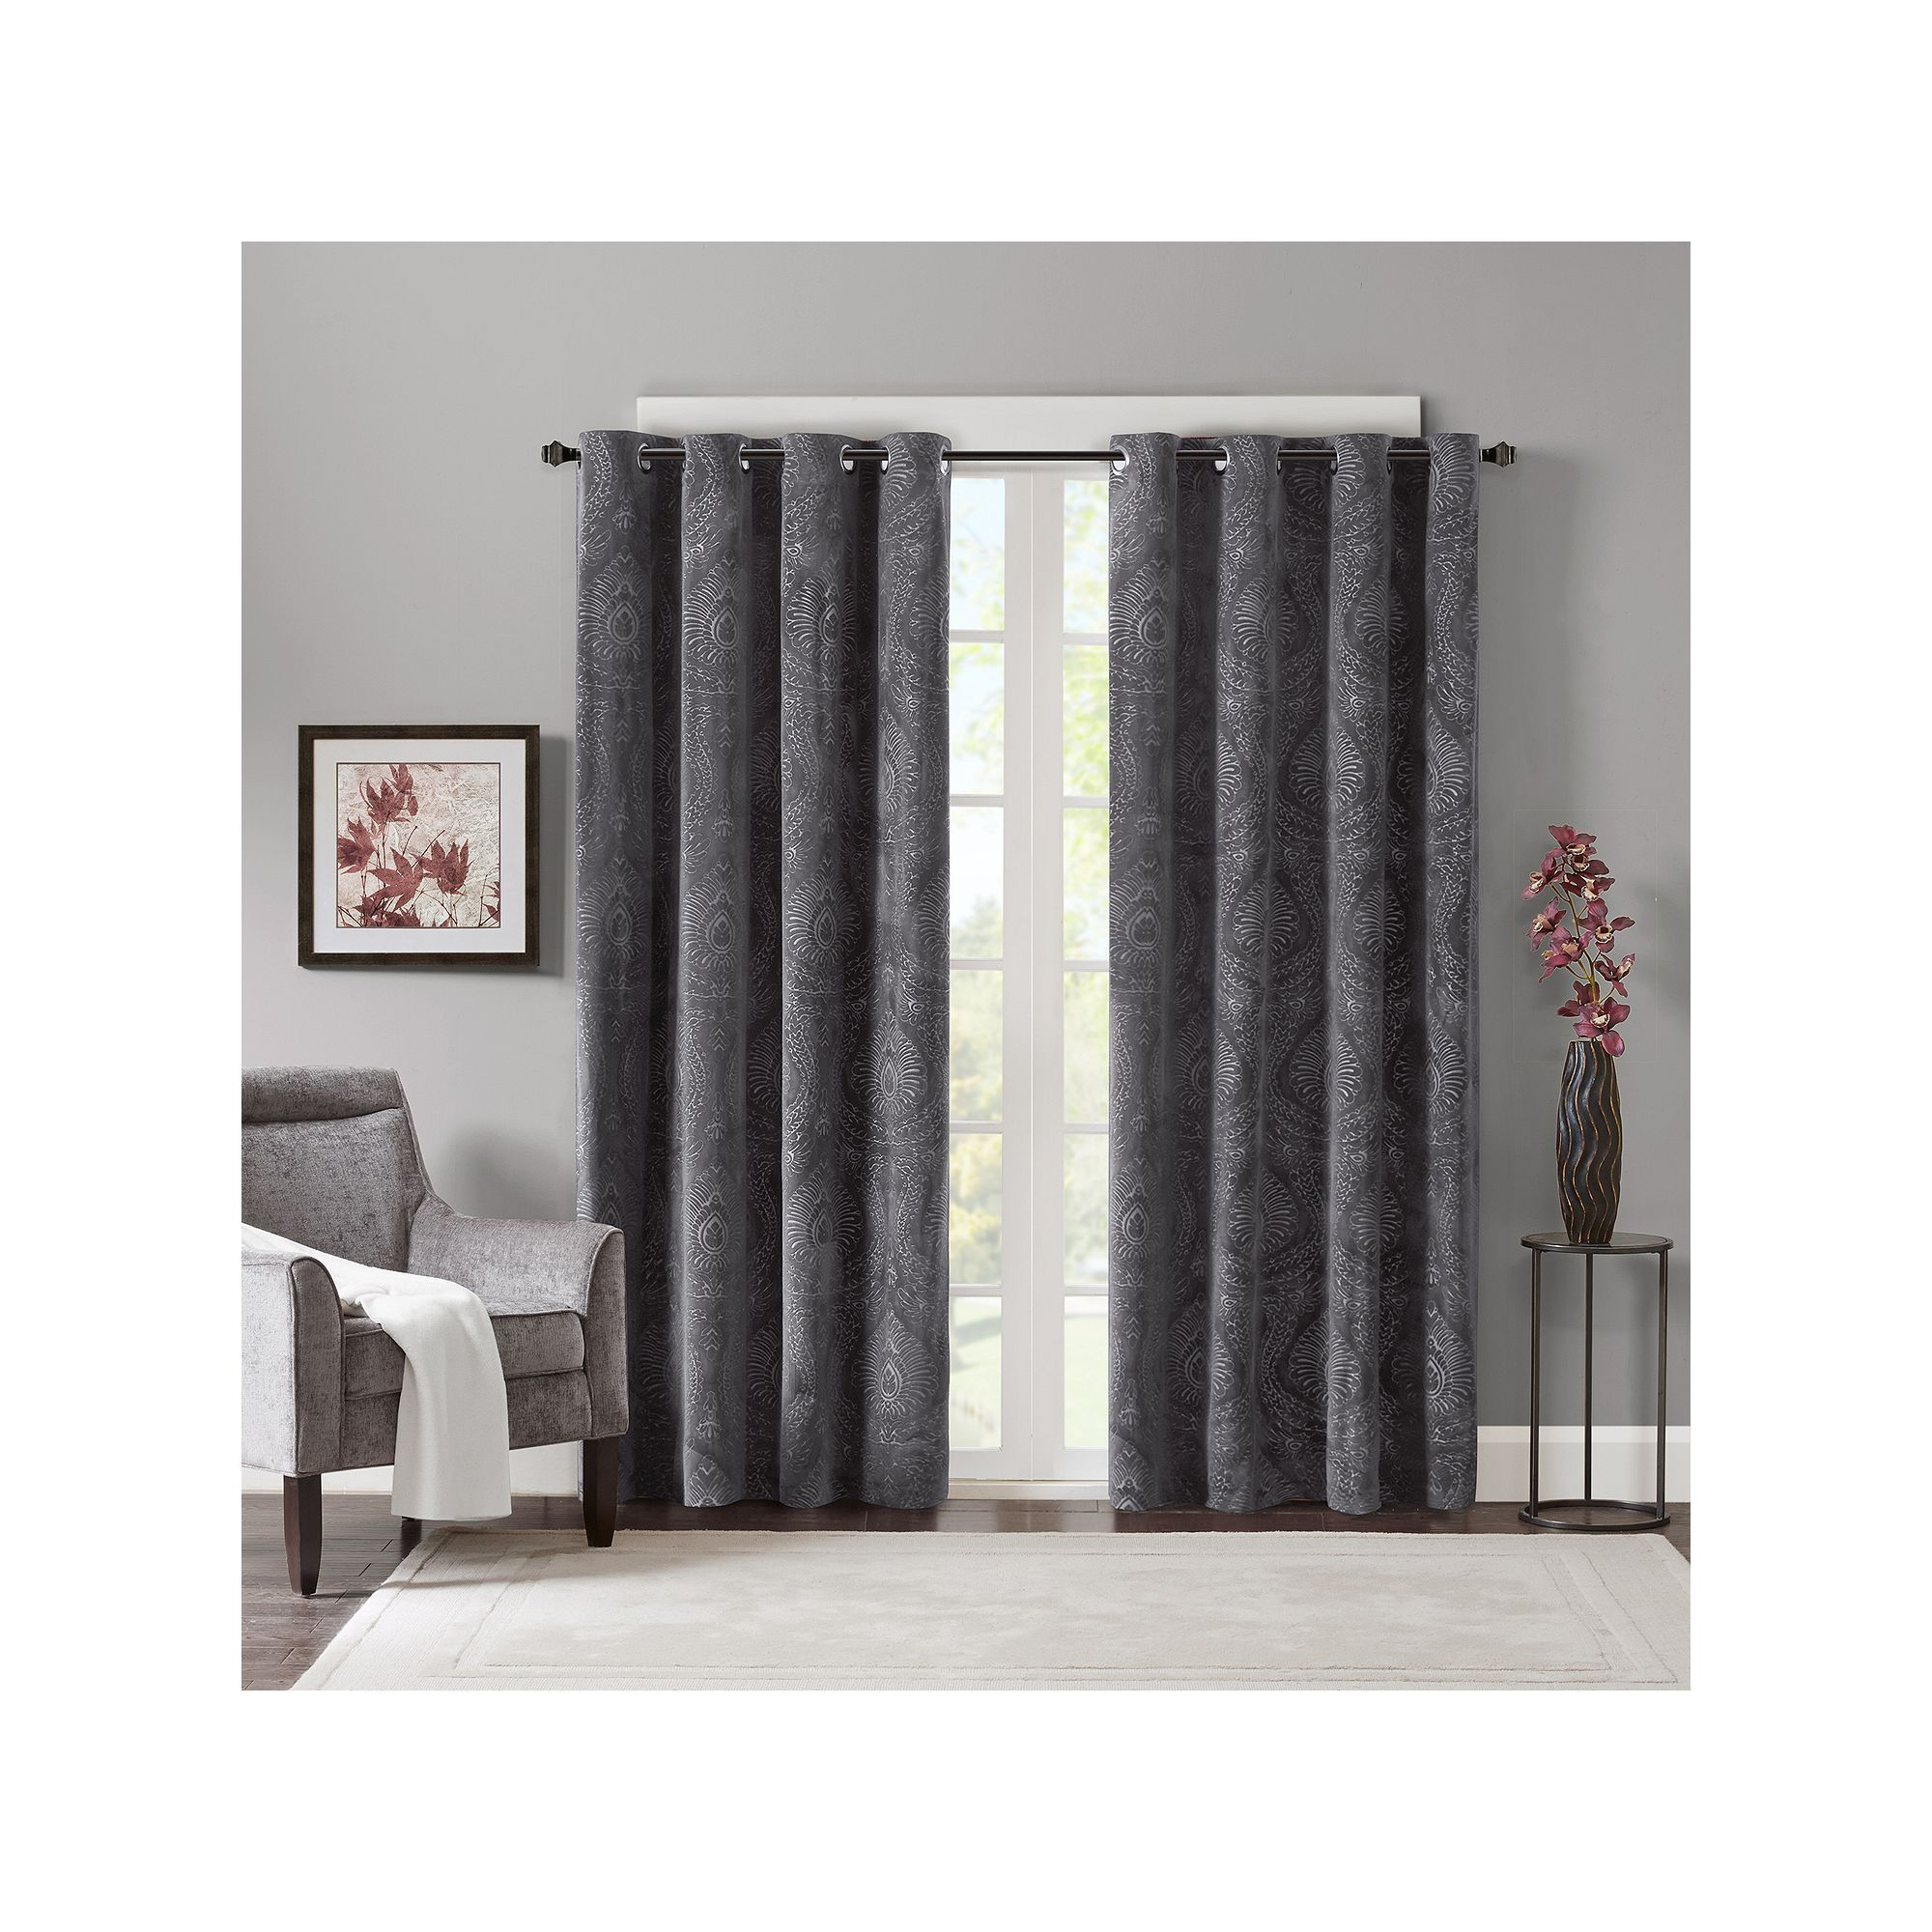 Red Velvet Window Curtains - Madison park cecil velvet window curtain set dark red